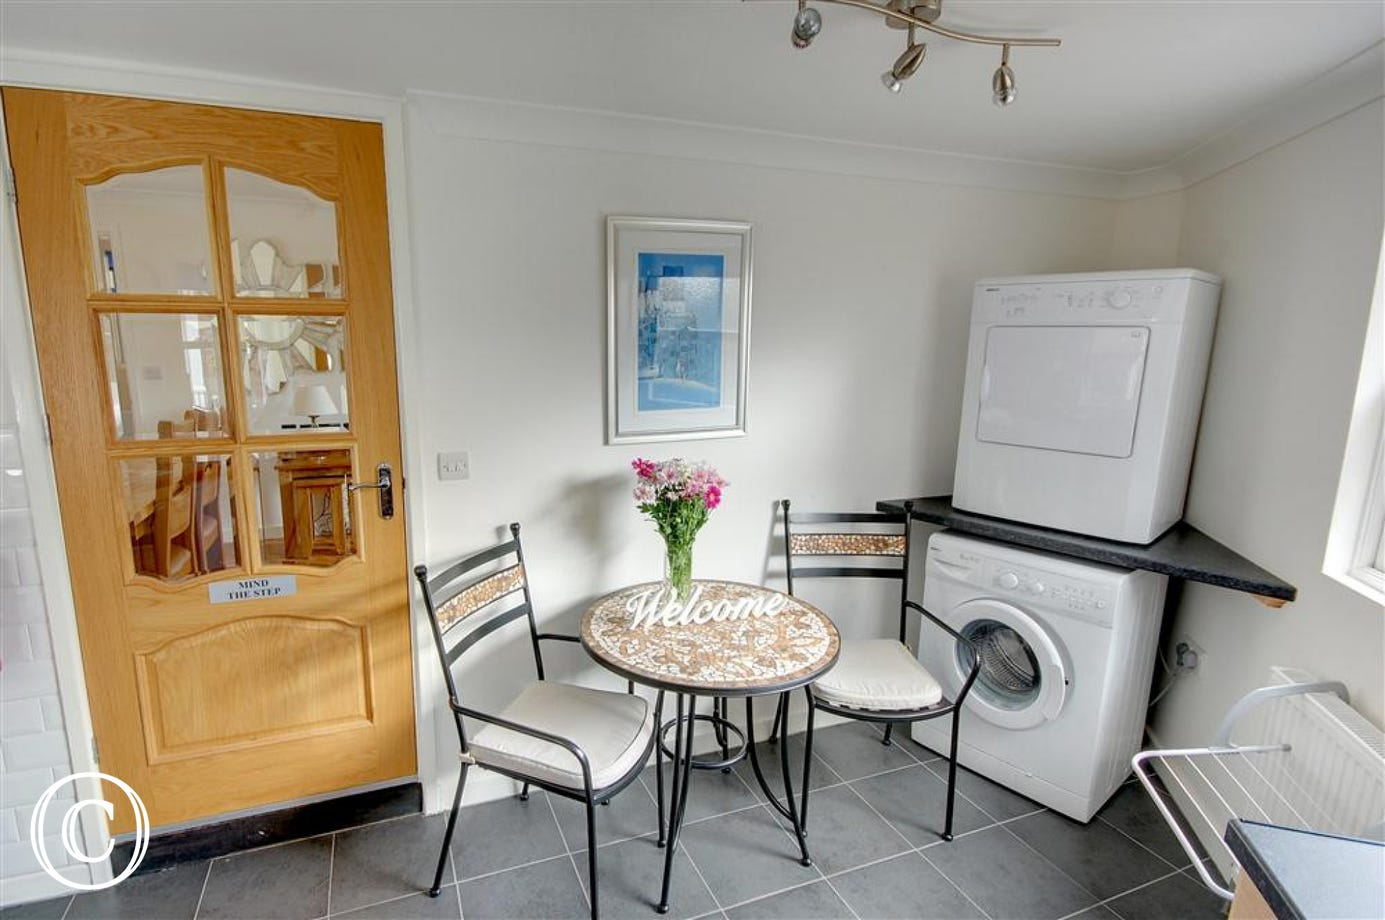 The Kitchen has a small breakfast table and chairs along with washing/drying facilities.